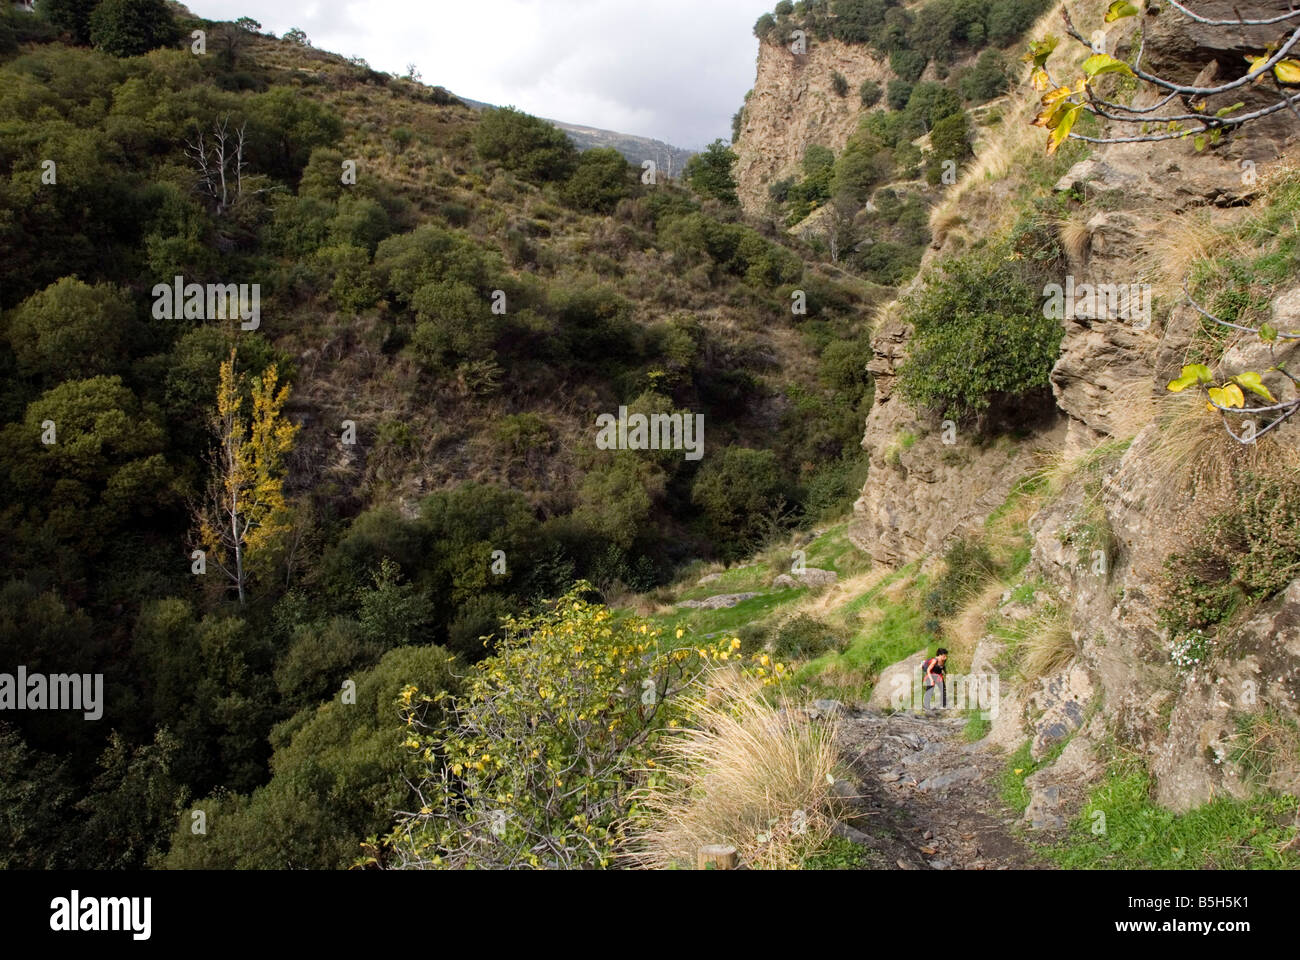 Trekker waking along trail in the green Poqueira valley Sierra Nevada mountains in southern Spain - Stock Image